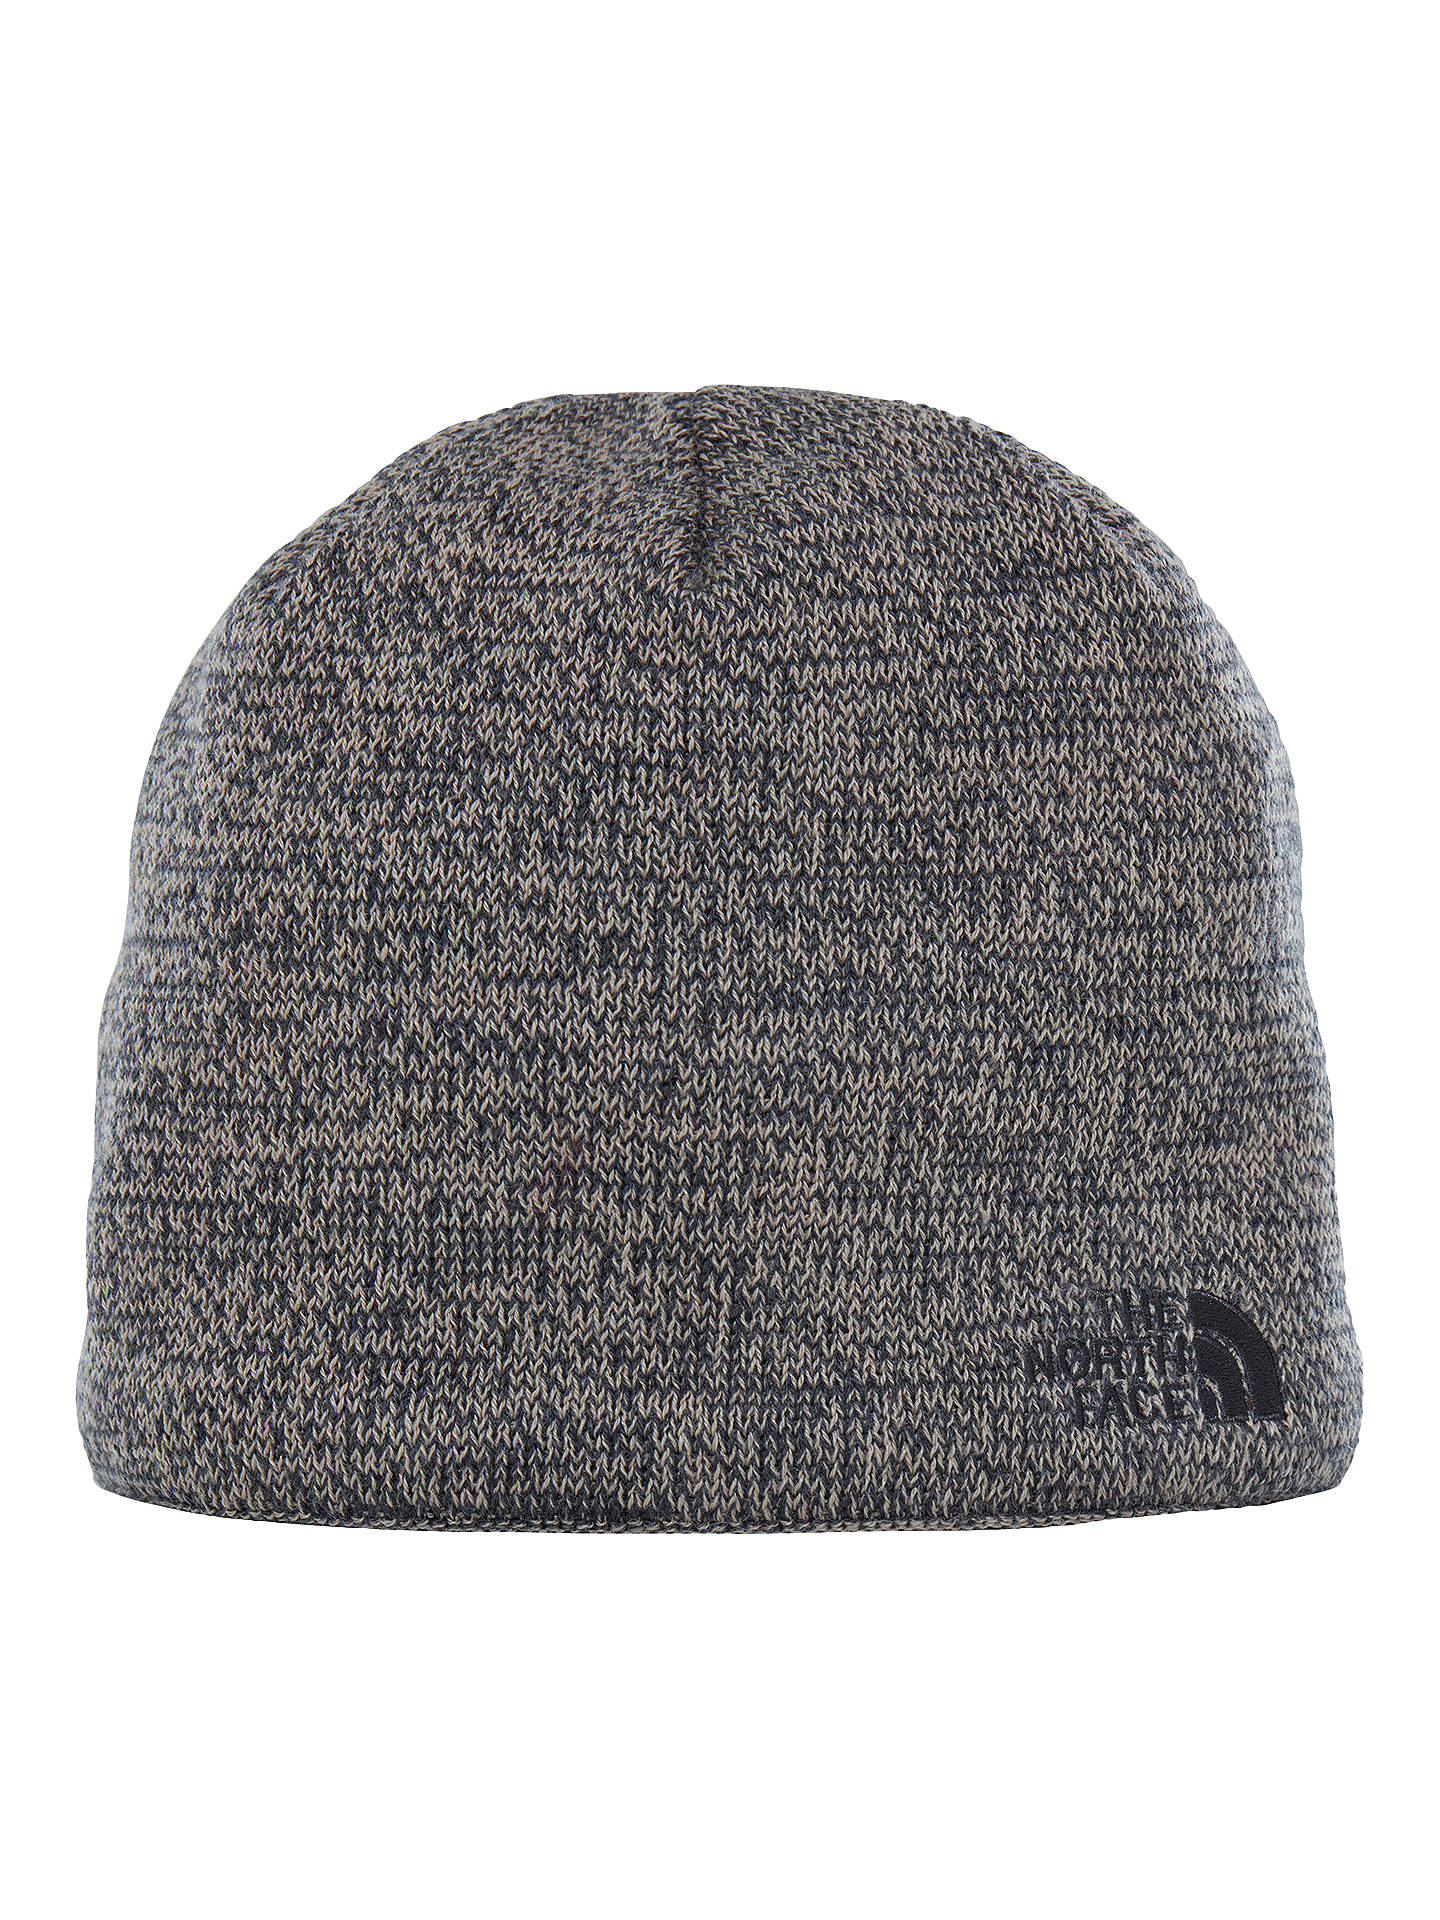 BuyThe North Face Jim Beanie, One Size, Grey Online at johnlewis.com